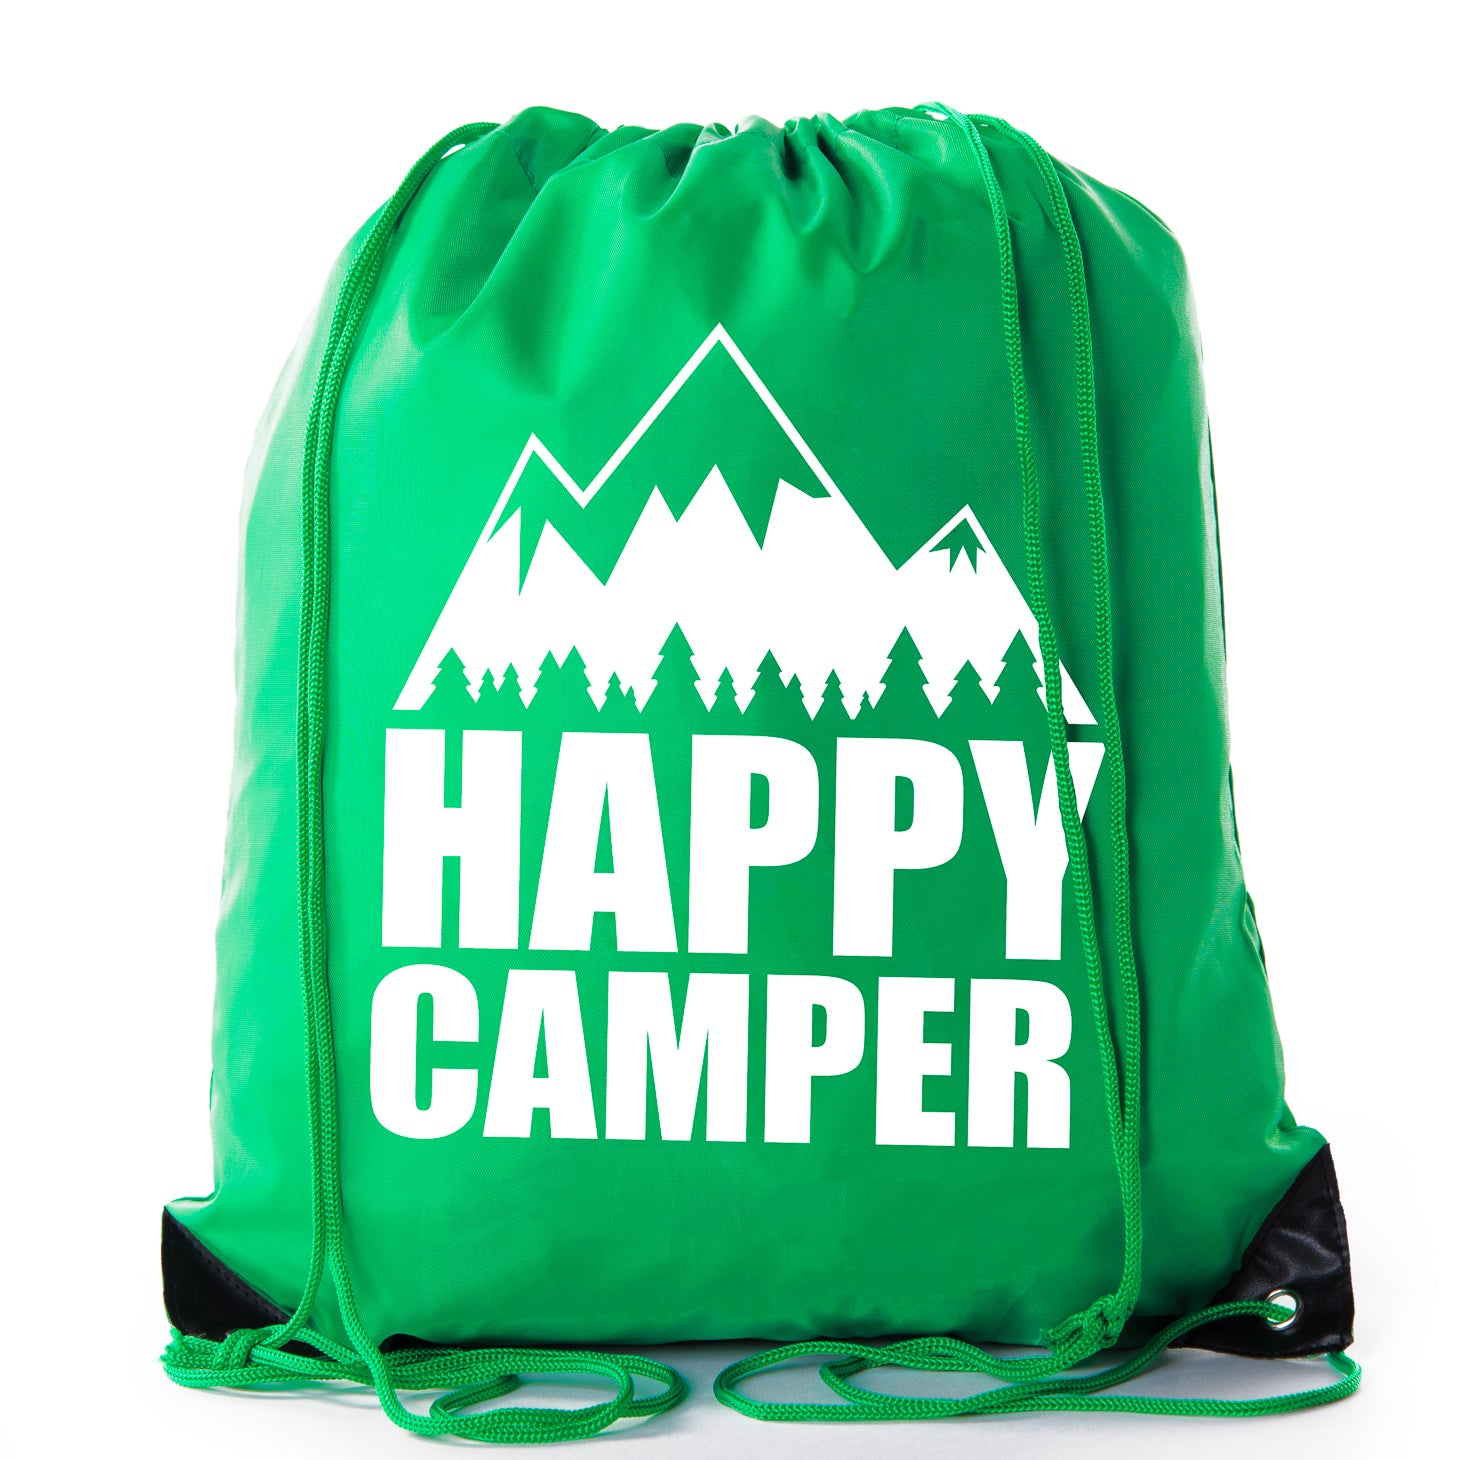 Accessory - Mato & Hash Camping Drawstring Backpack For Birthday Parties And Summer Camp - Happy Camper